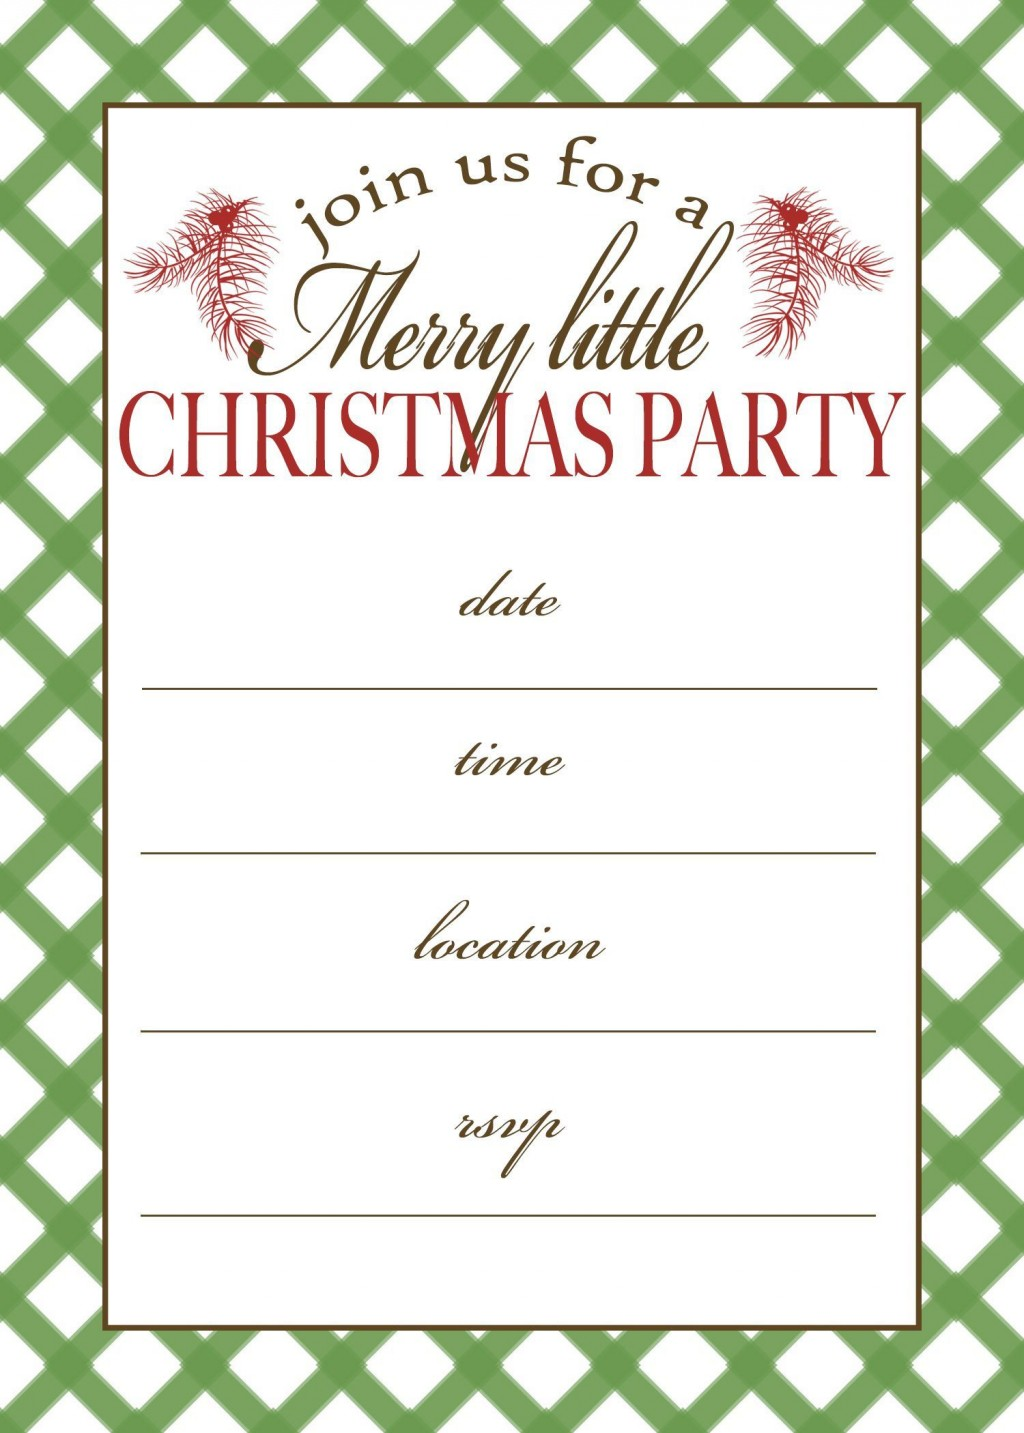 001 Stunning Free Online Holiday Invitation Template Concept  TemplatesLarge